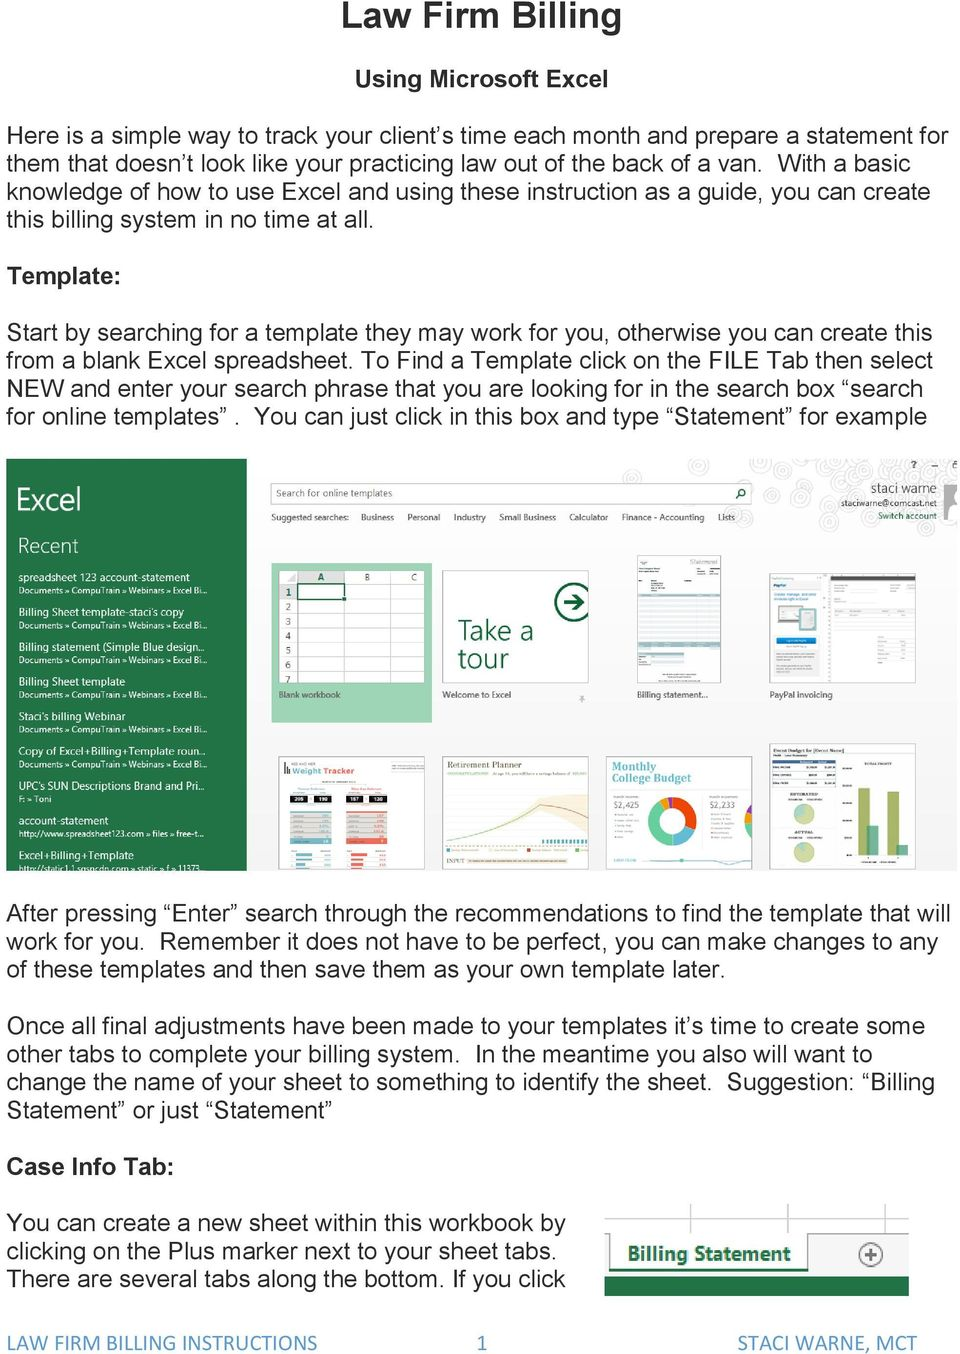 How to Use Excel for Law Firm Billing - PDF